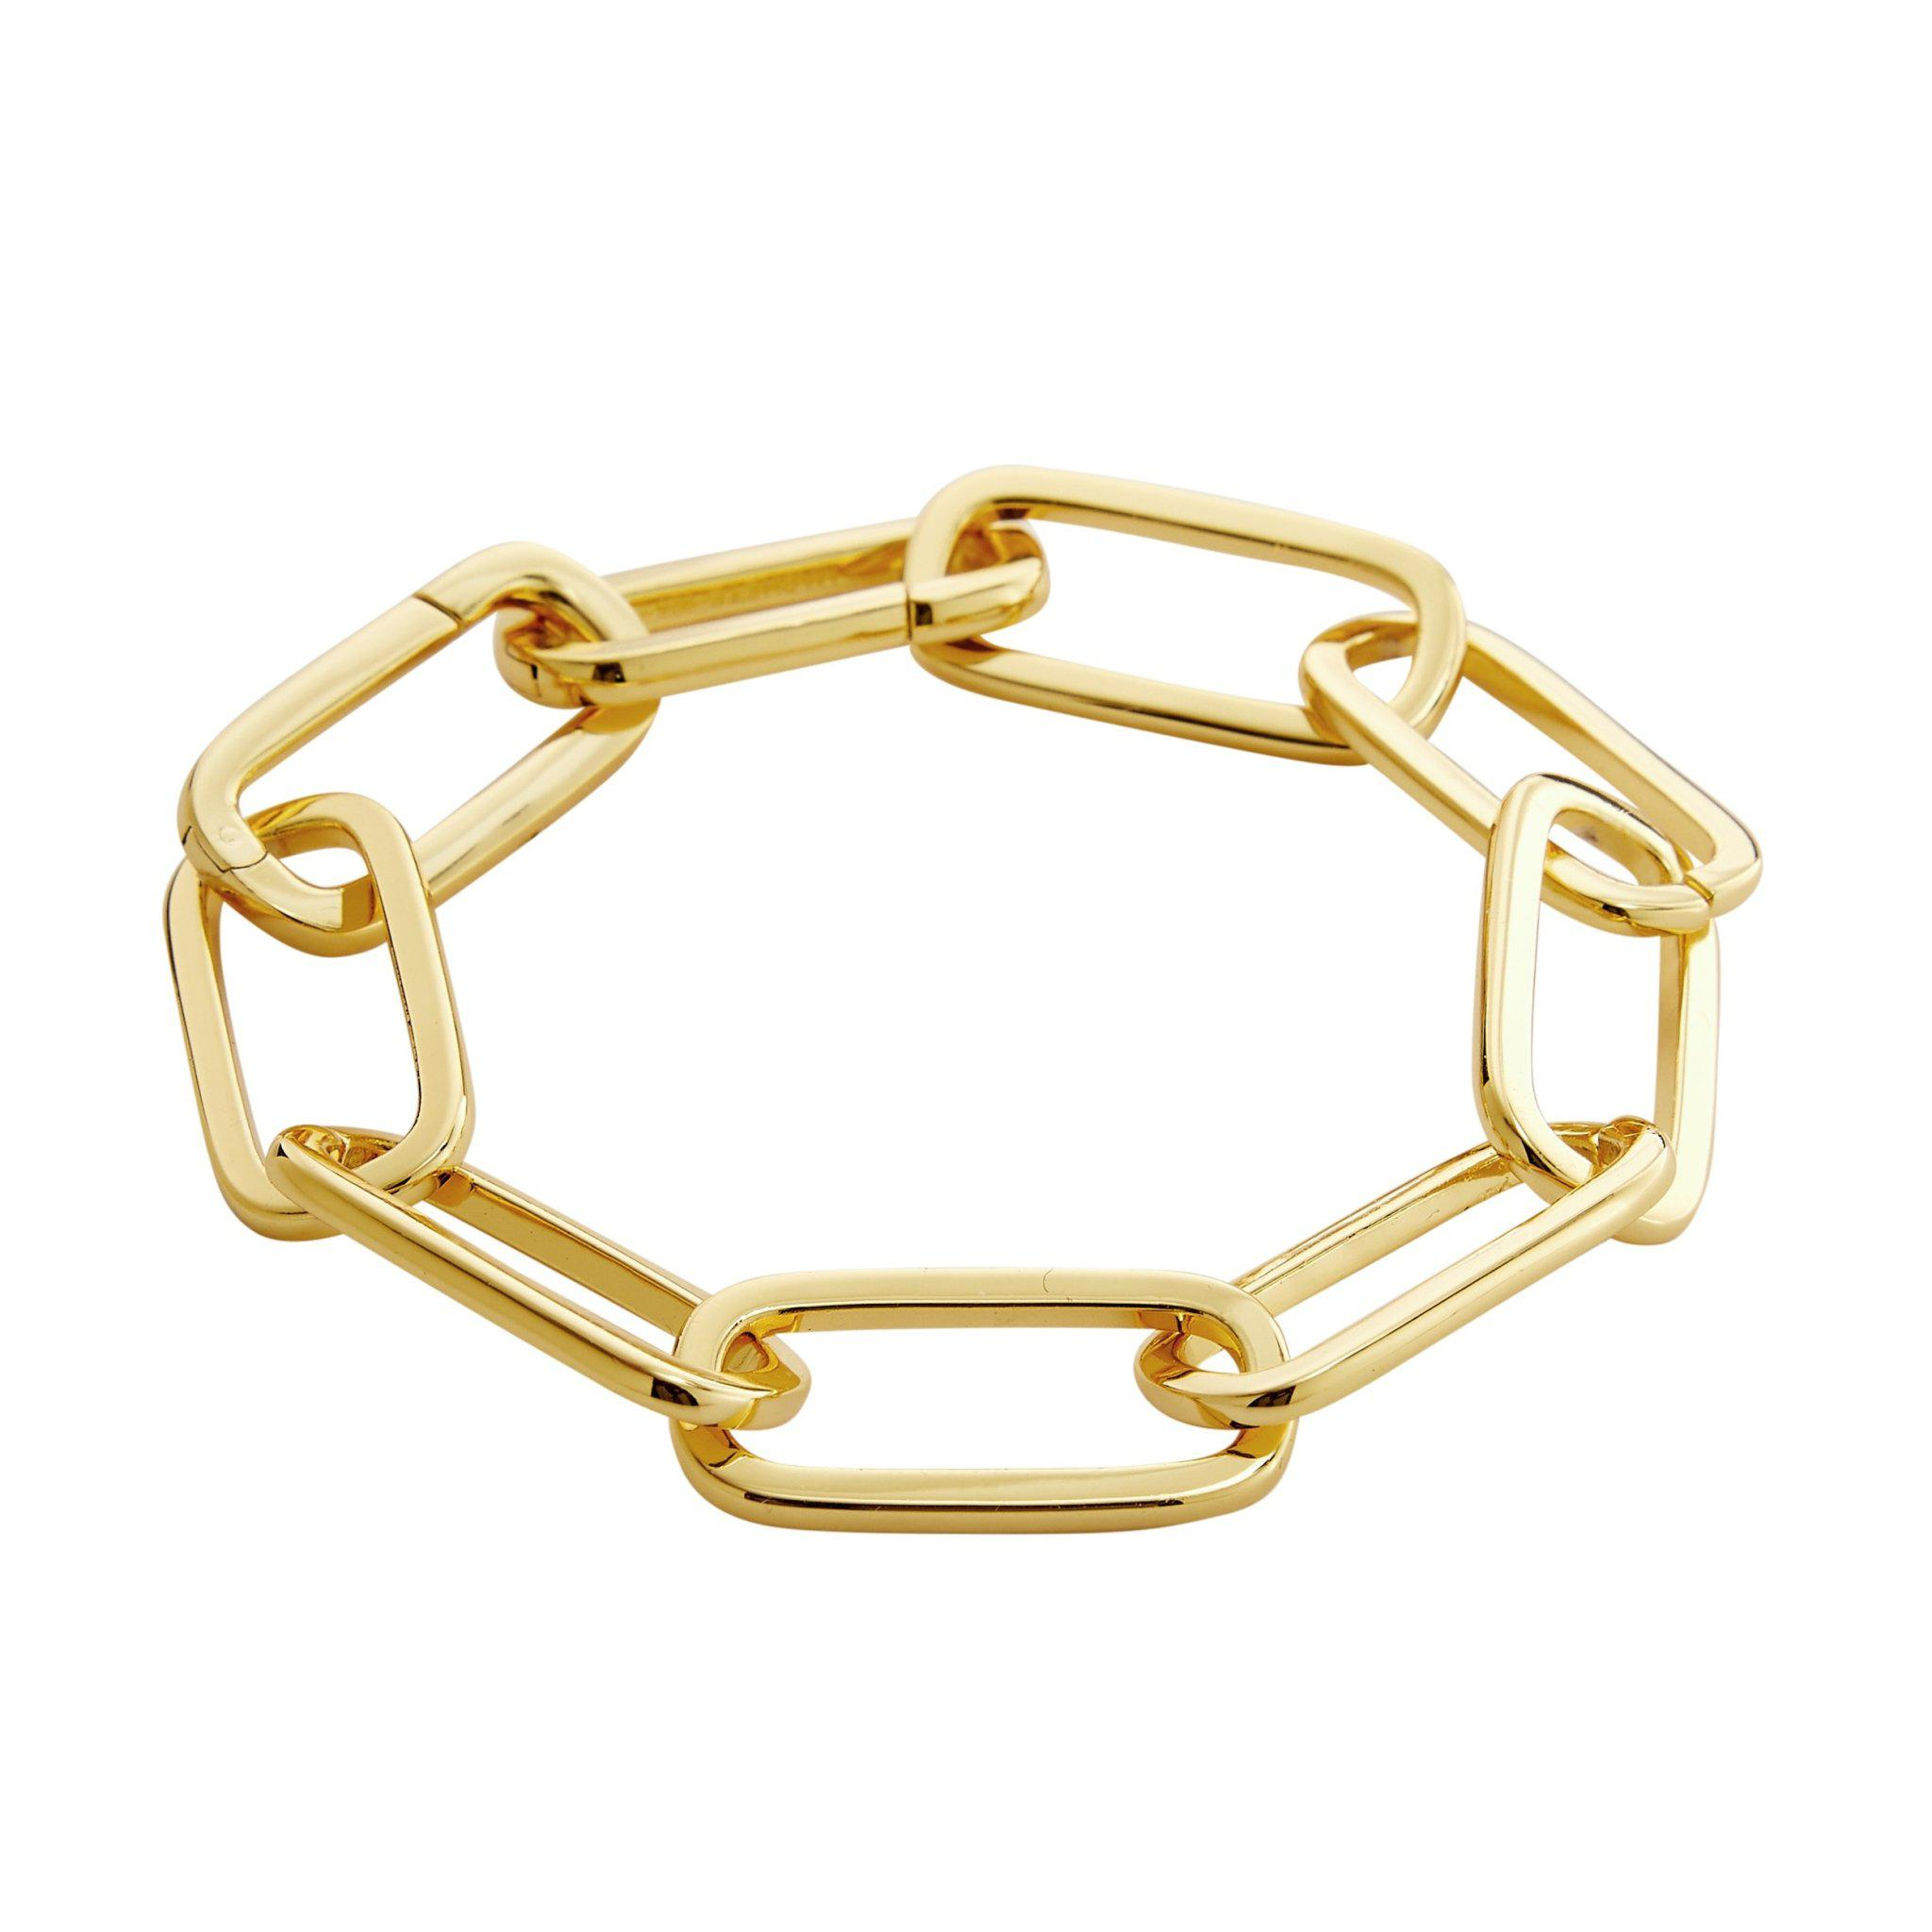 Grande Solid Sterling Paperclip Chain Bracelet in Gold